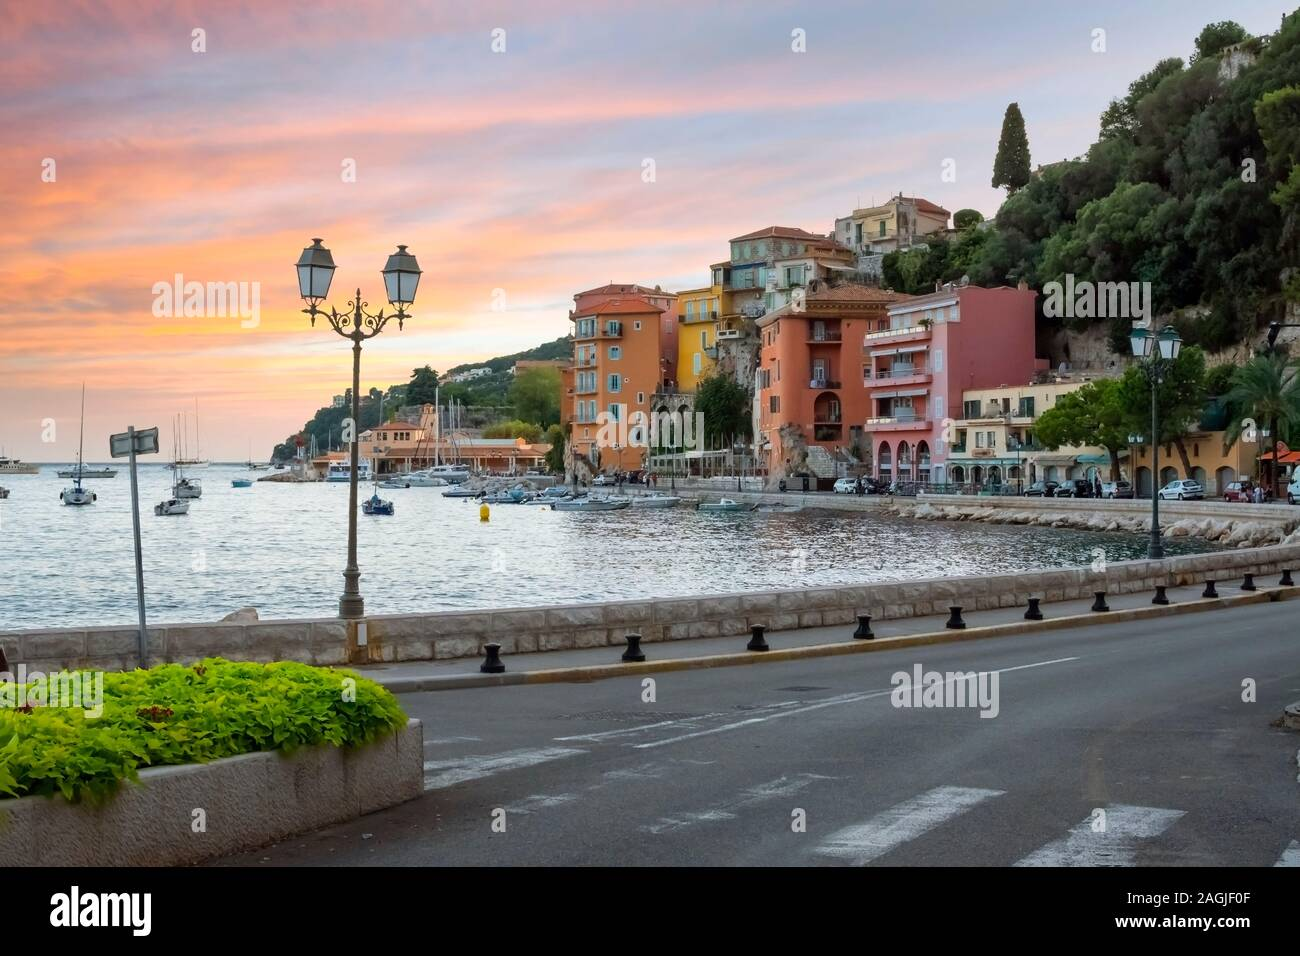 A colorful sunset on the Cote d'Azure at the seaside town of Villefranche Sur Mer, France, on the French Riviera. Stock Photo